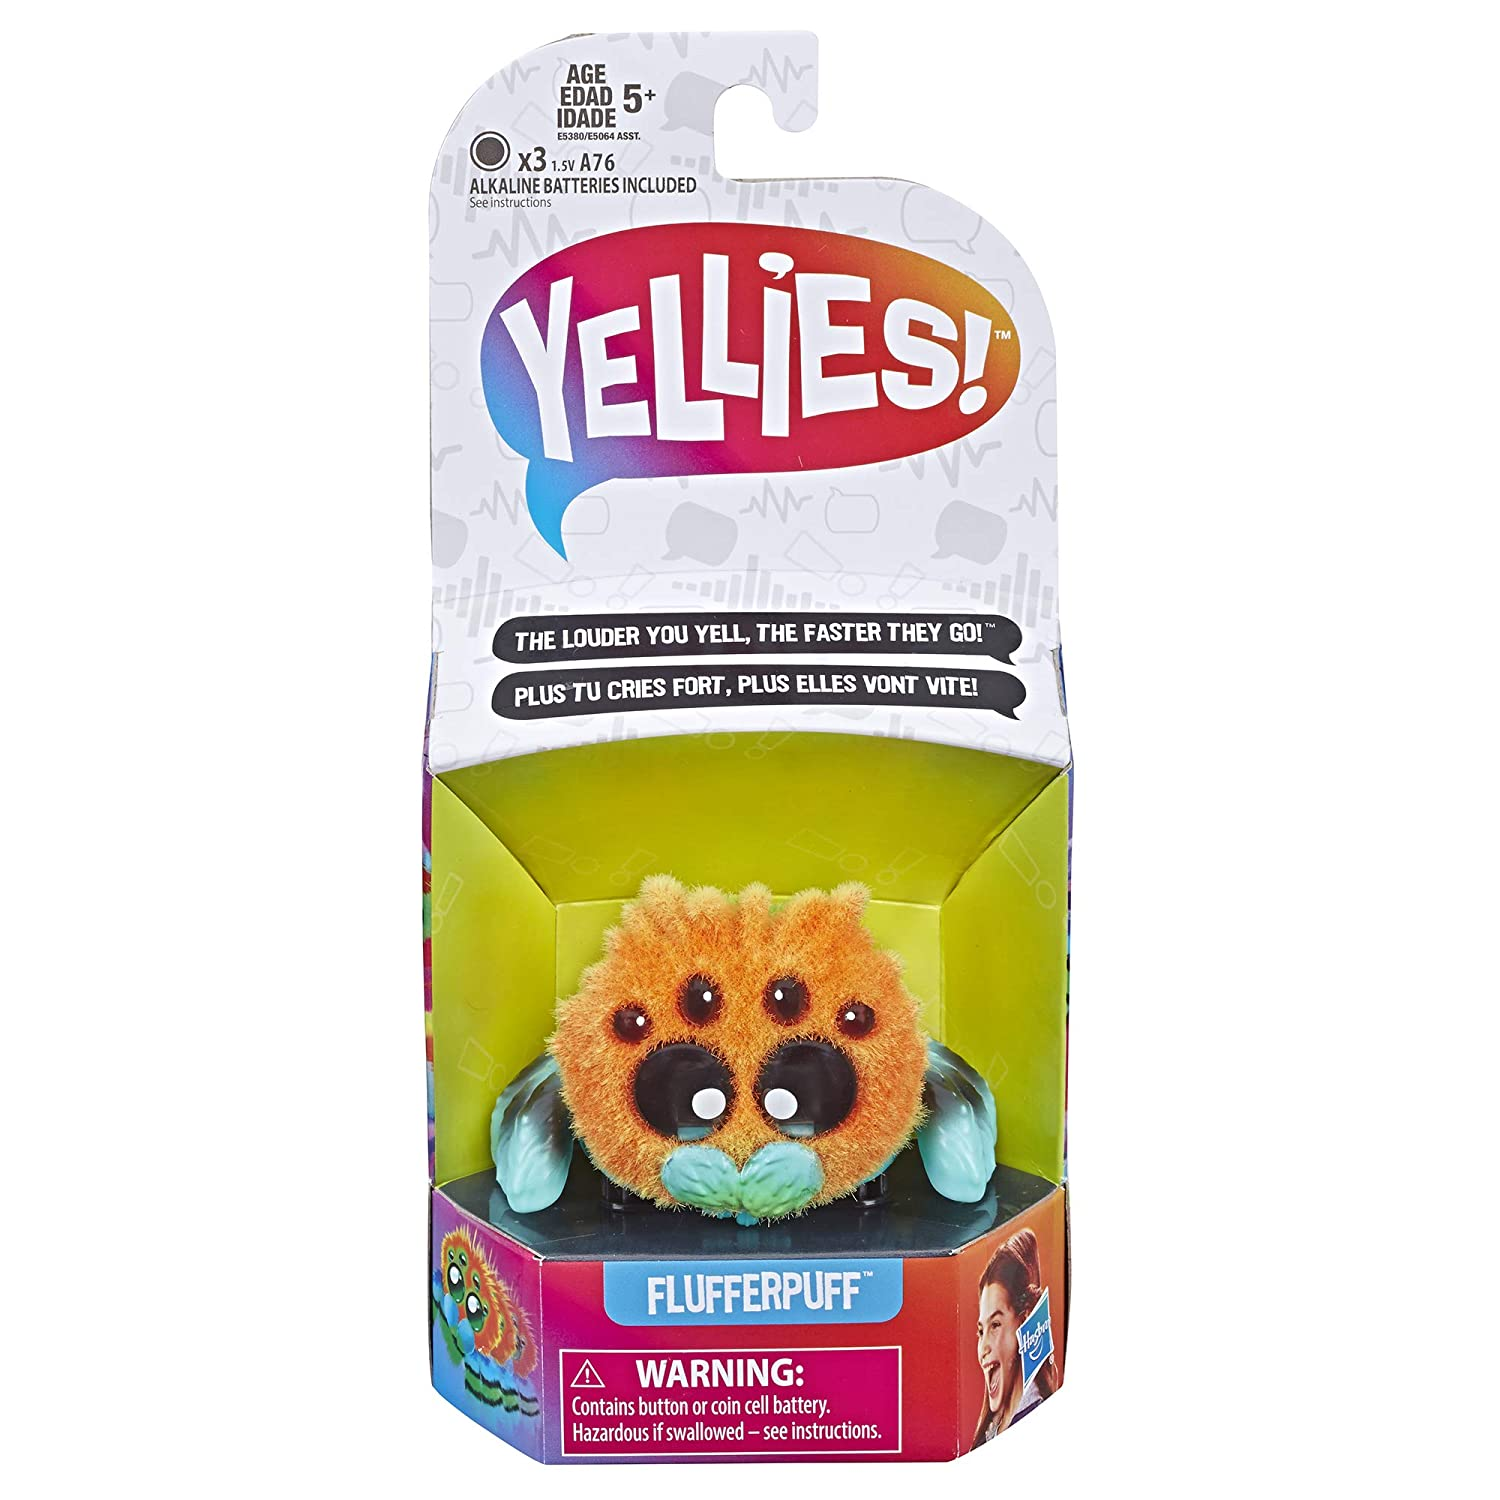 Yellies Flufferpuff; Voice-Activated Spider Pet; Ages 5 and up Hasbro E5380AS00